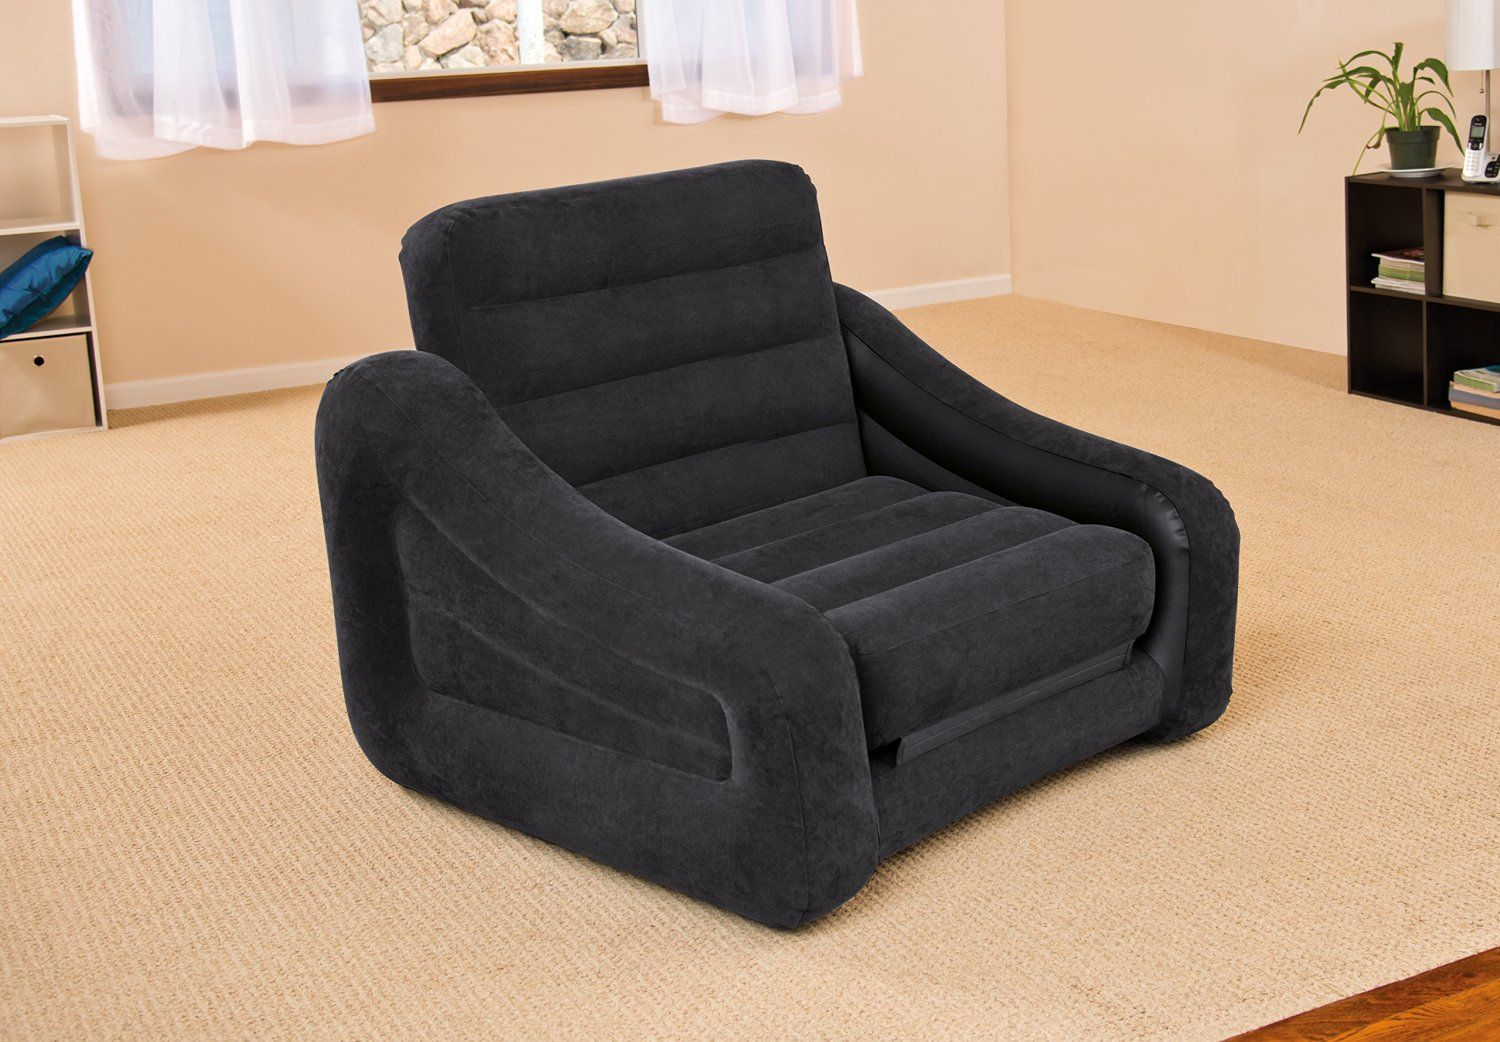 Pull Out Chairs Chair Design Bangladesh Amazon Com Intex Inflatable Bed Twin Colors May Vary